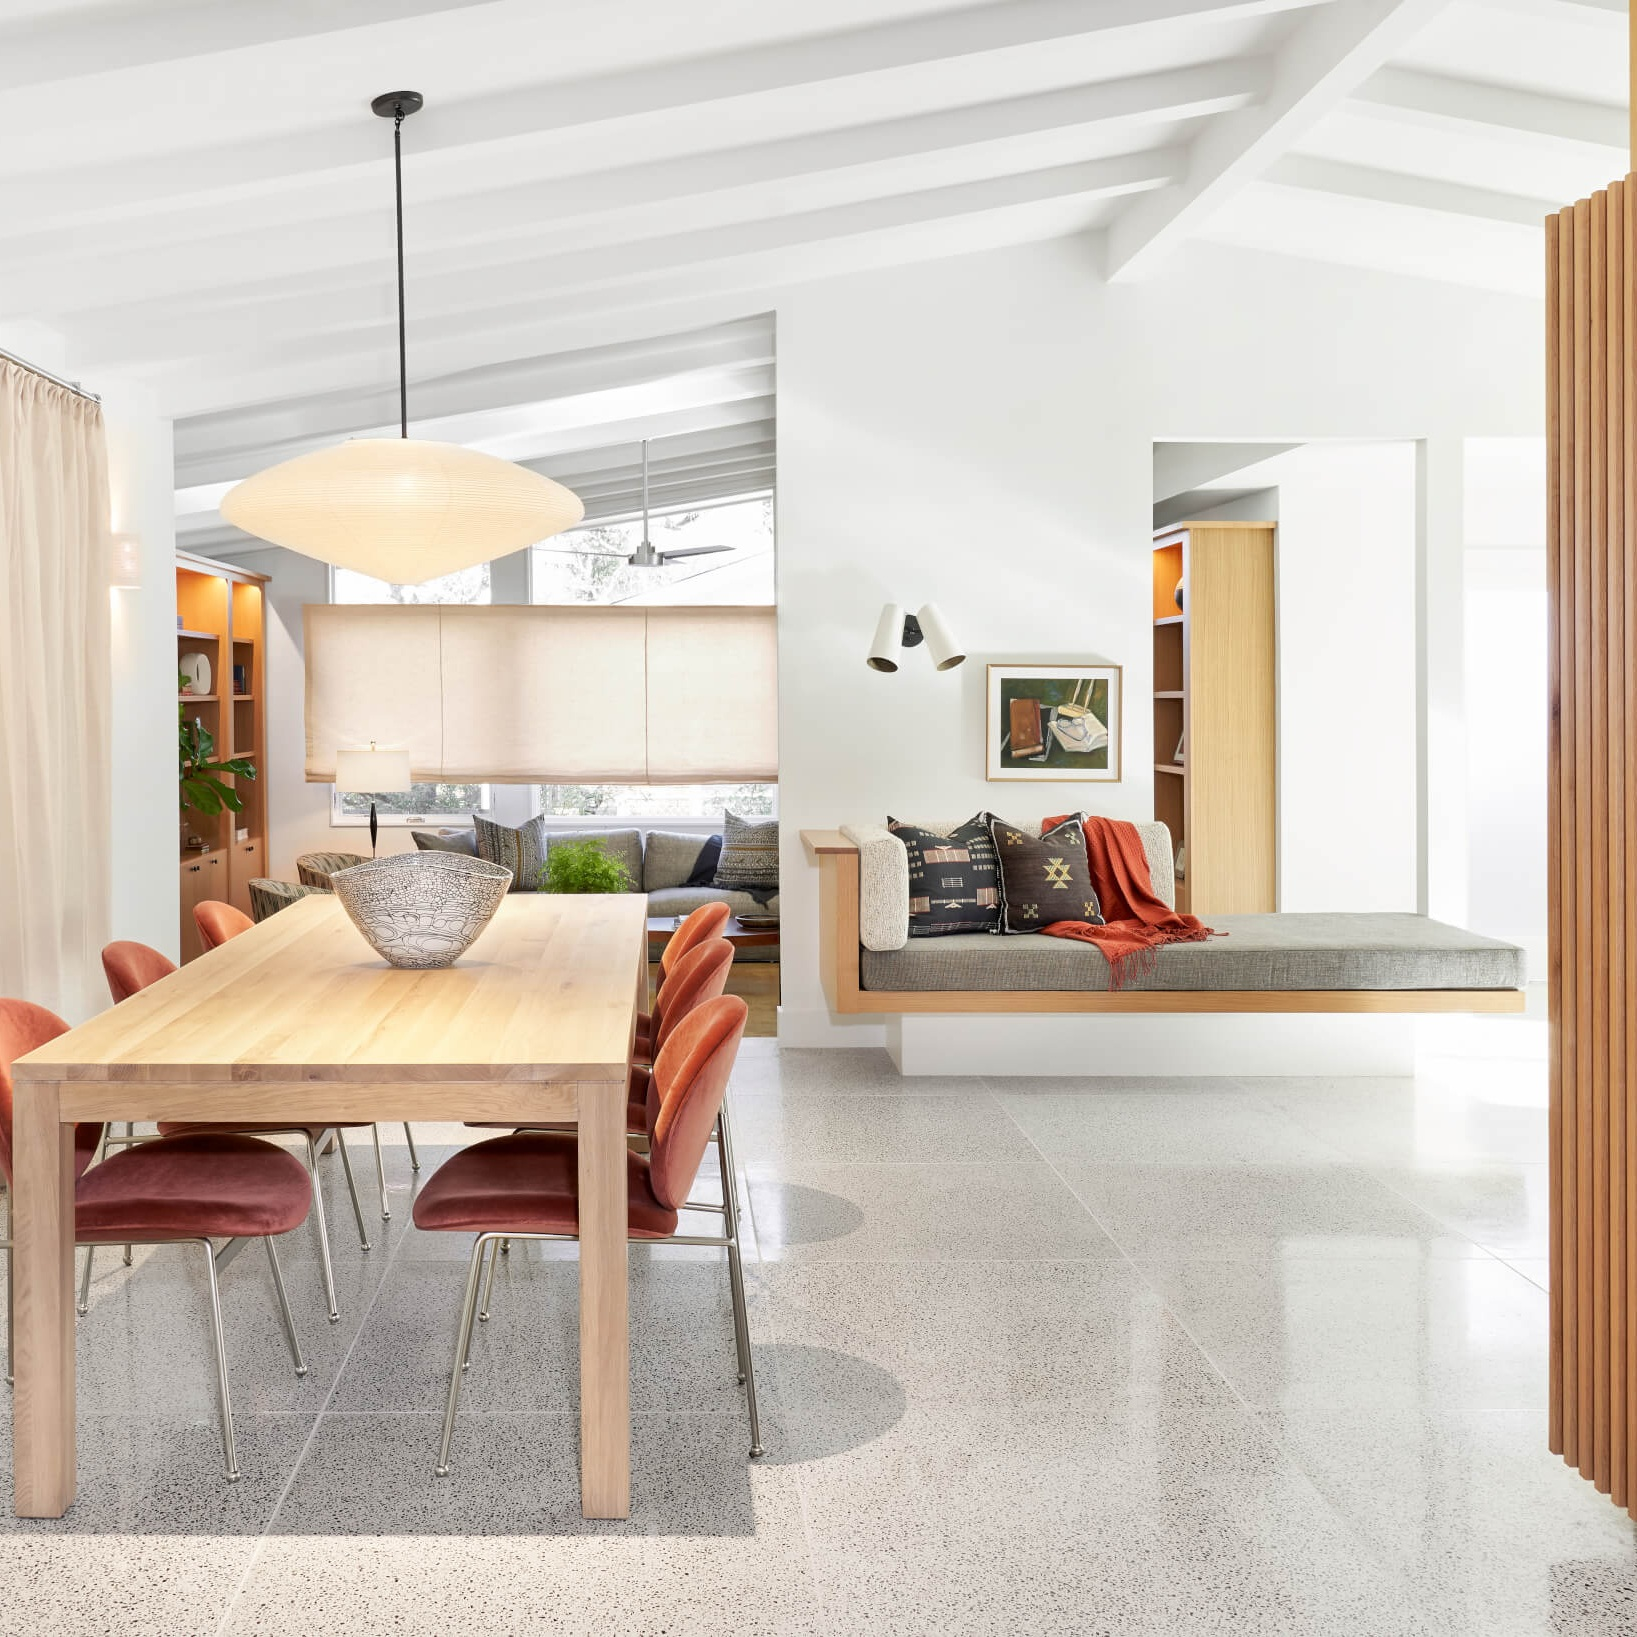 DWELL: 'A 1950s Austin Ranch House Gets a Luxe Revamp With Southwest Flair,' Lauren Jones